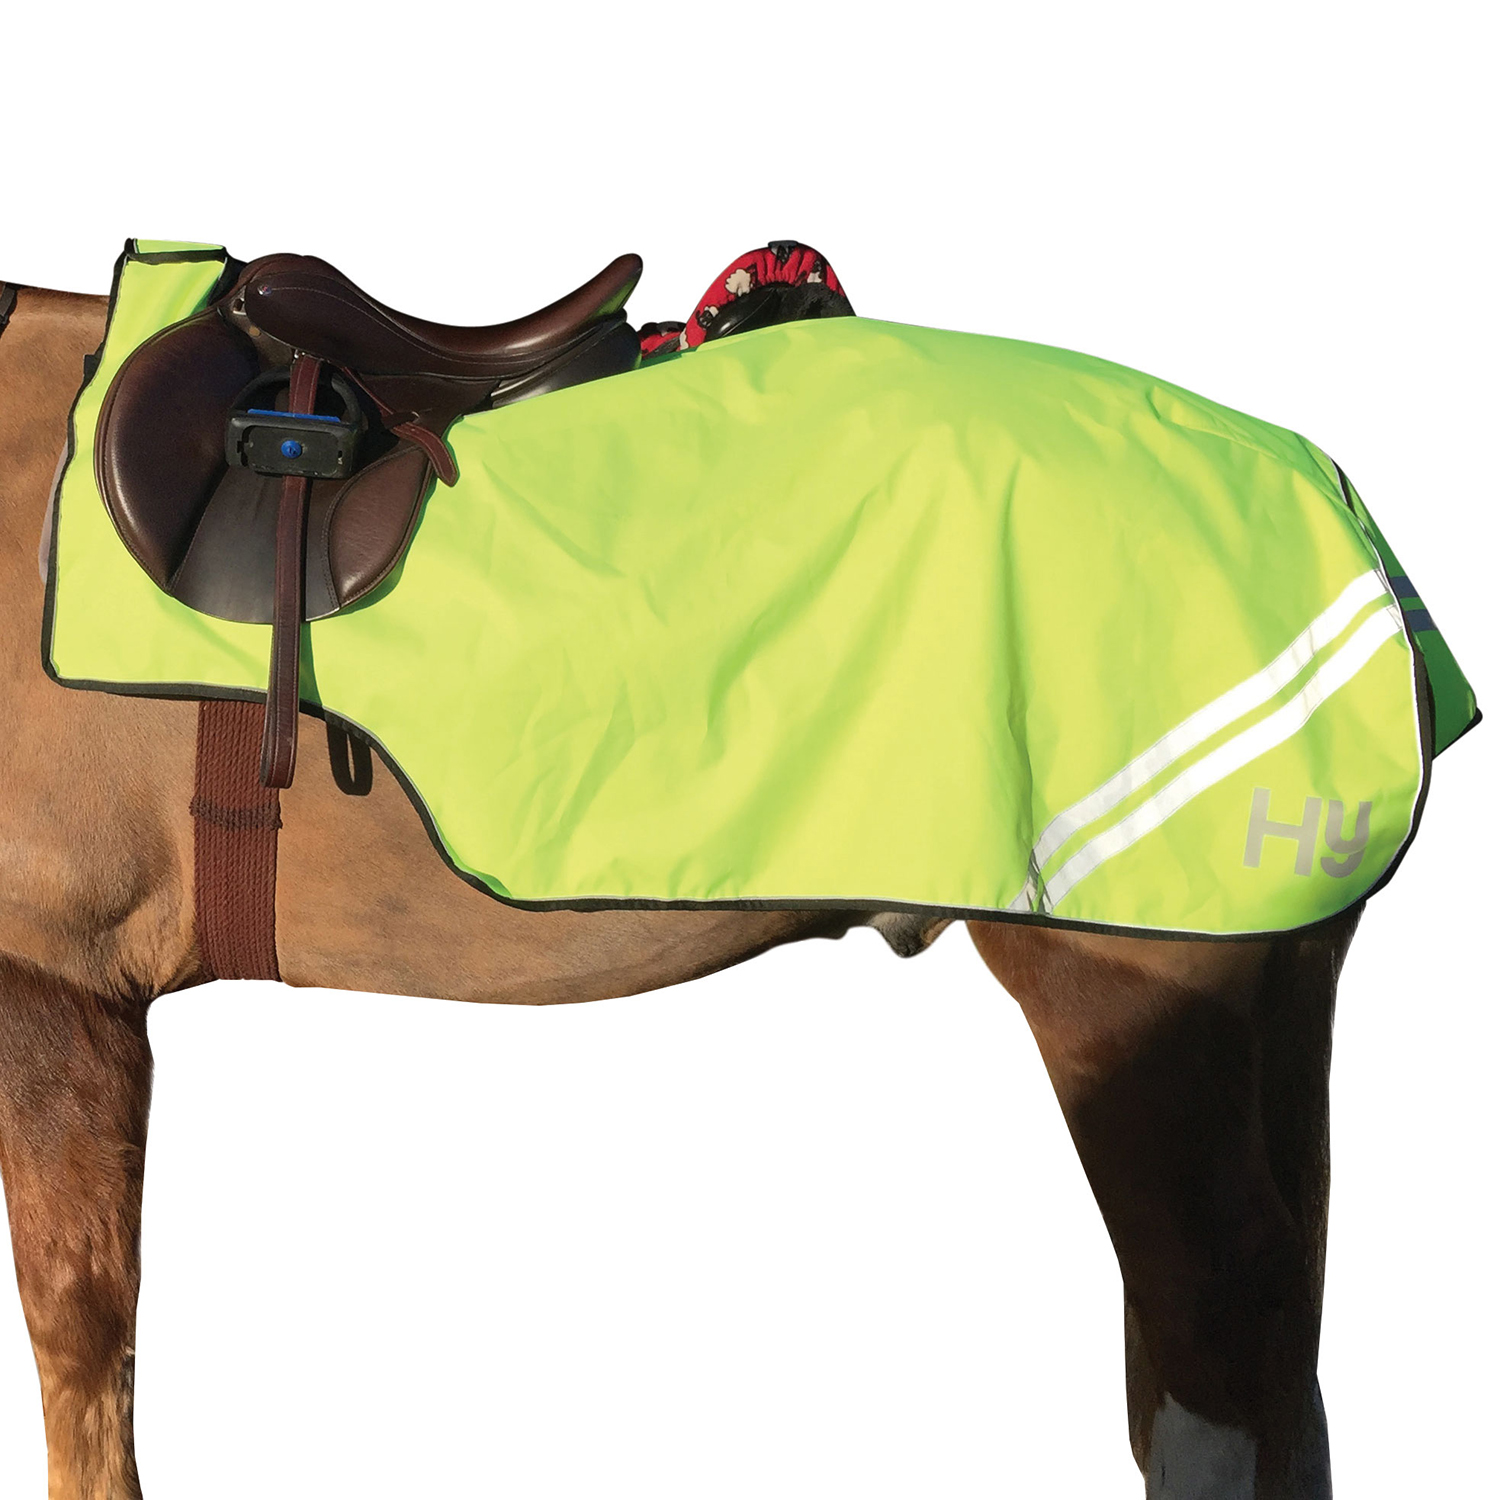 EXERCISE SHEET CHRISTMAS FANCY DRESS HORSE PONY NEW EQUESTRIAN